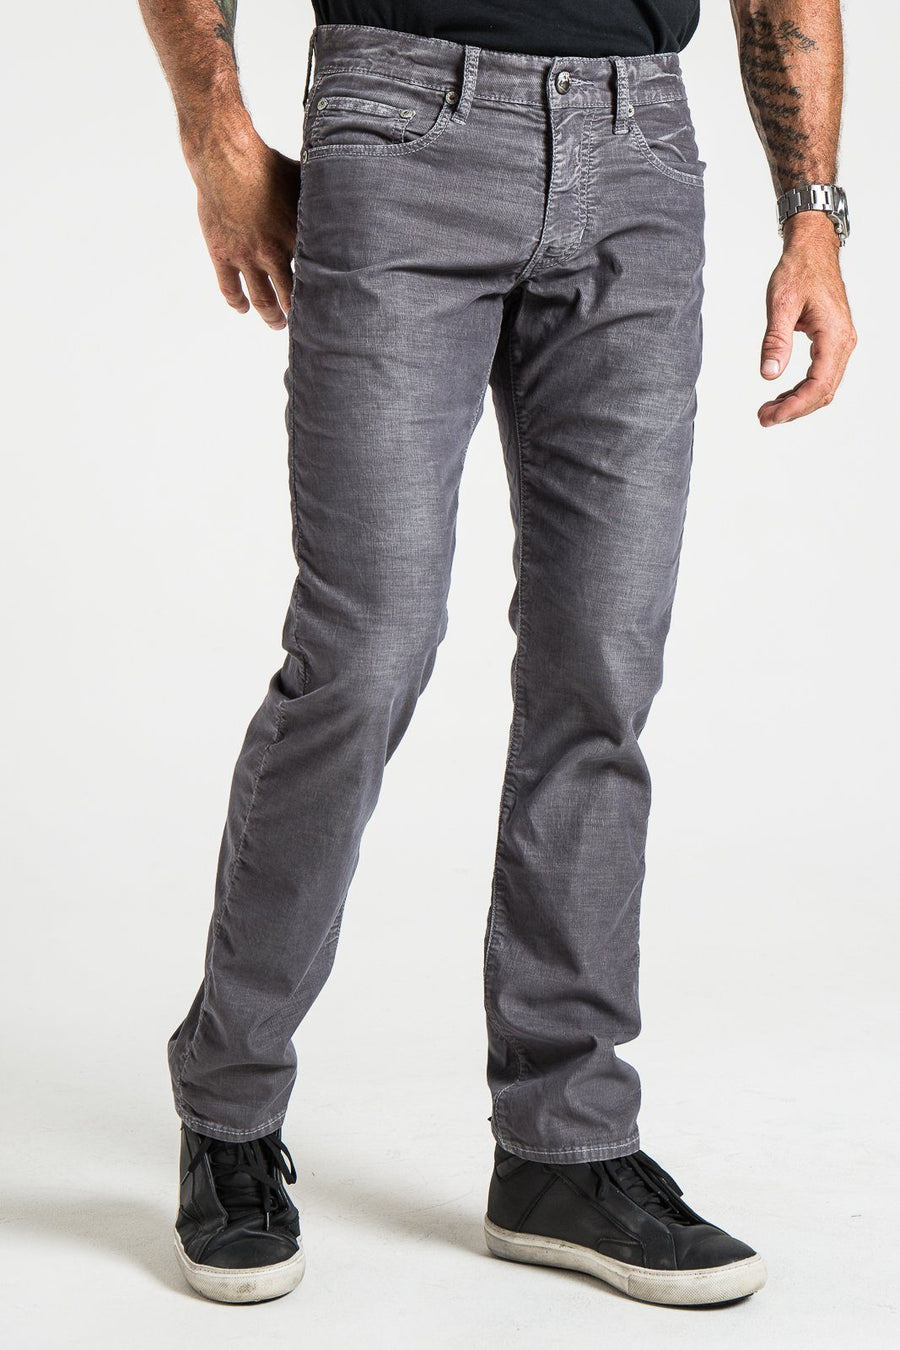 BARFLY SLIM IN STEEL CORDUROY